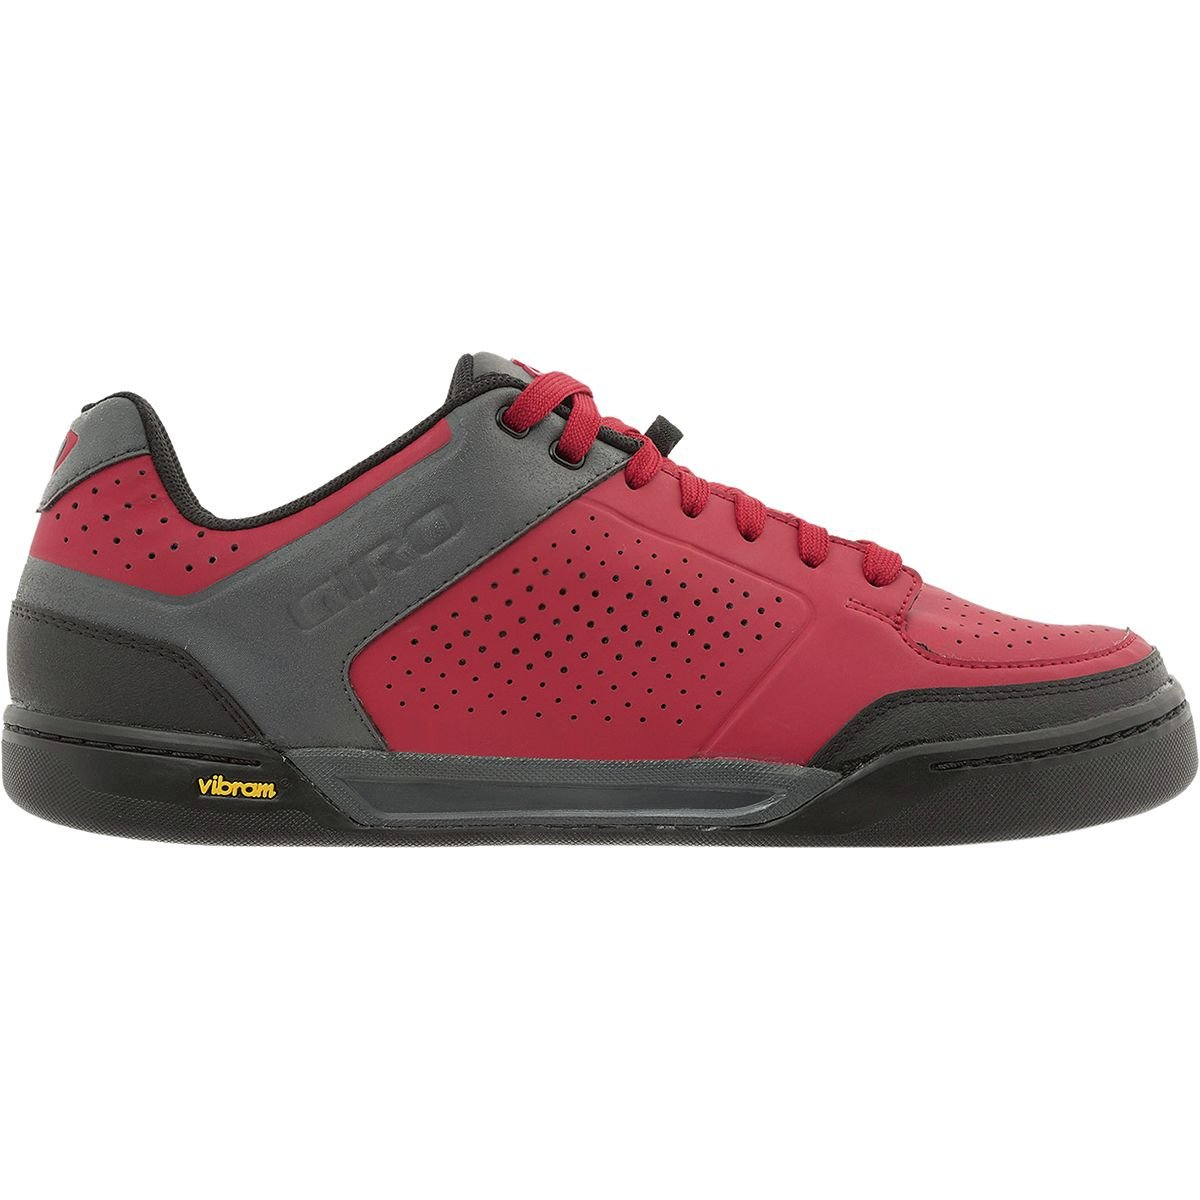 Giro Riddance Cycling Shoe – Men 's Dark Red/ダークシャドウ、46.0   B07C5SPQM6